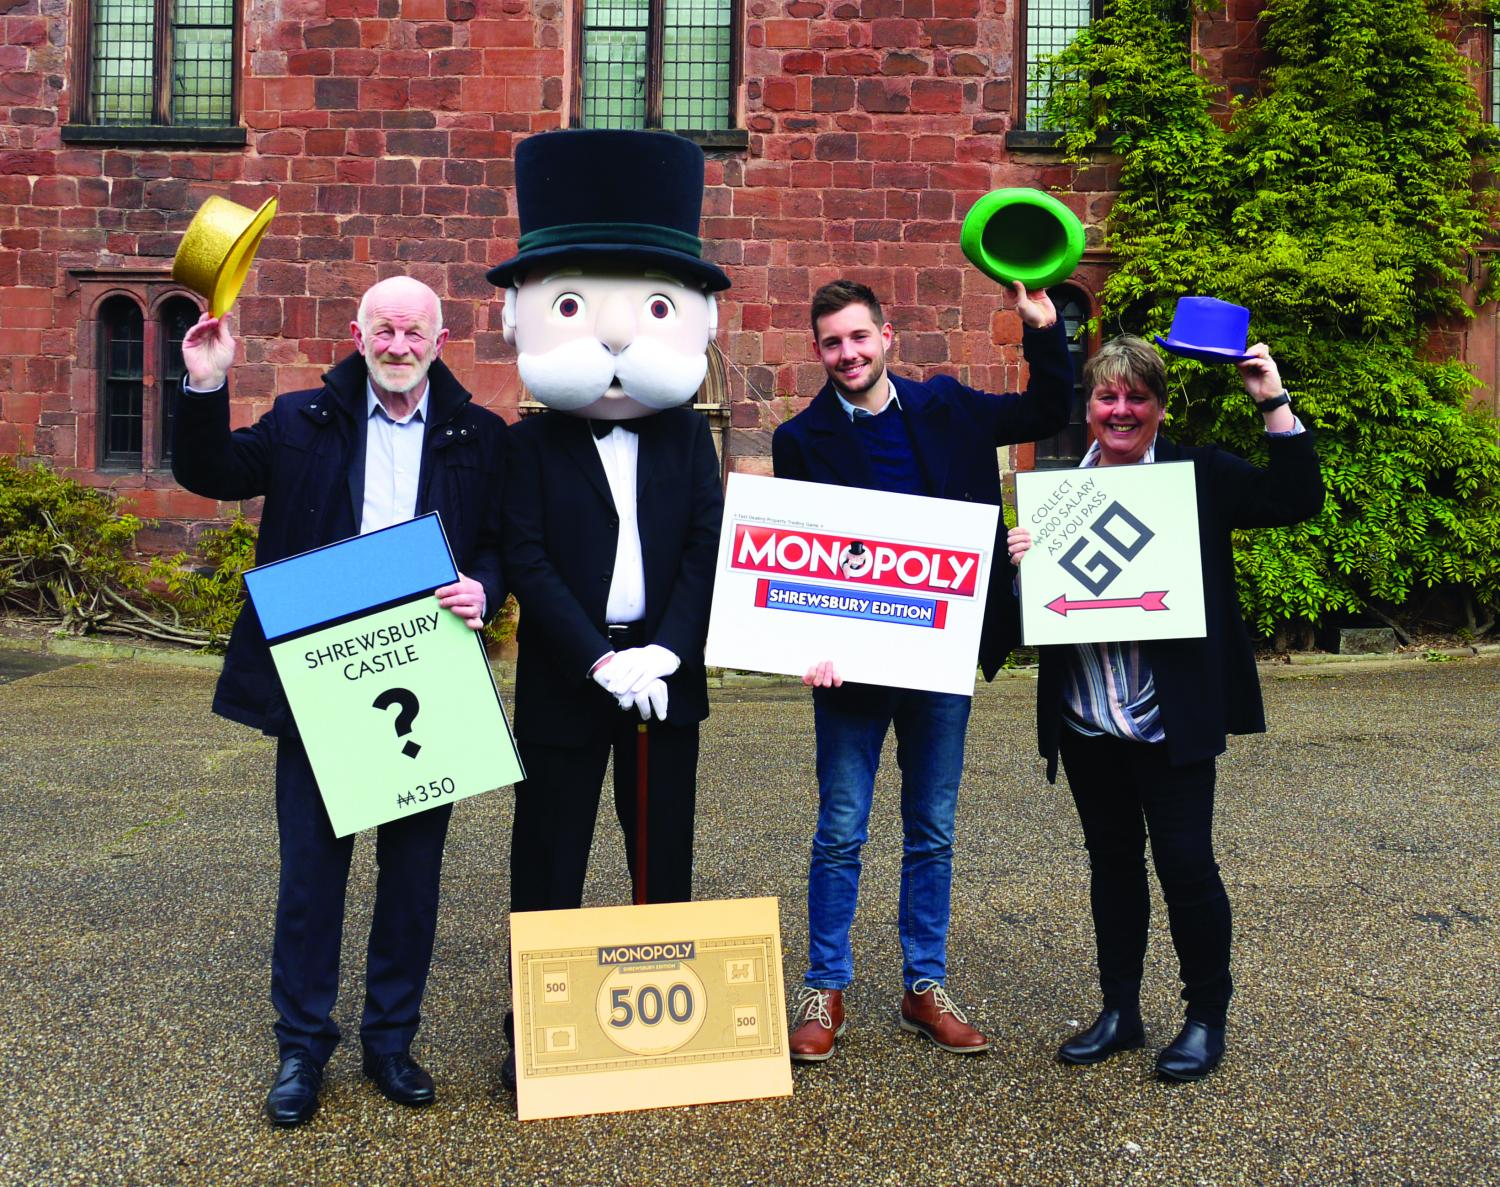 Shrewsbury Town Council's LeaderAlan Moseley, Mr Monopoly, Jake Houghton, Winning Moves and Lezley Picton, Portfolio Holder for Culture and Leisure.